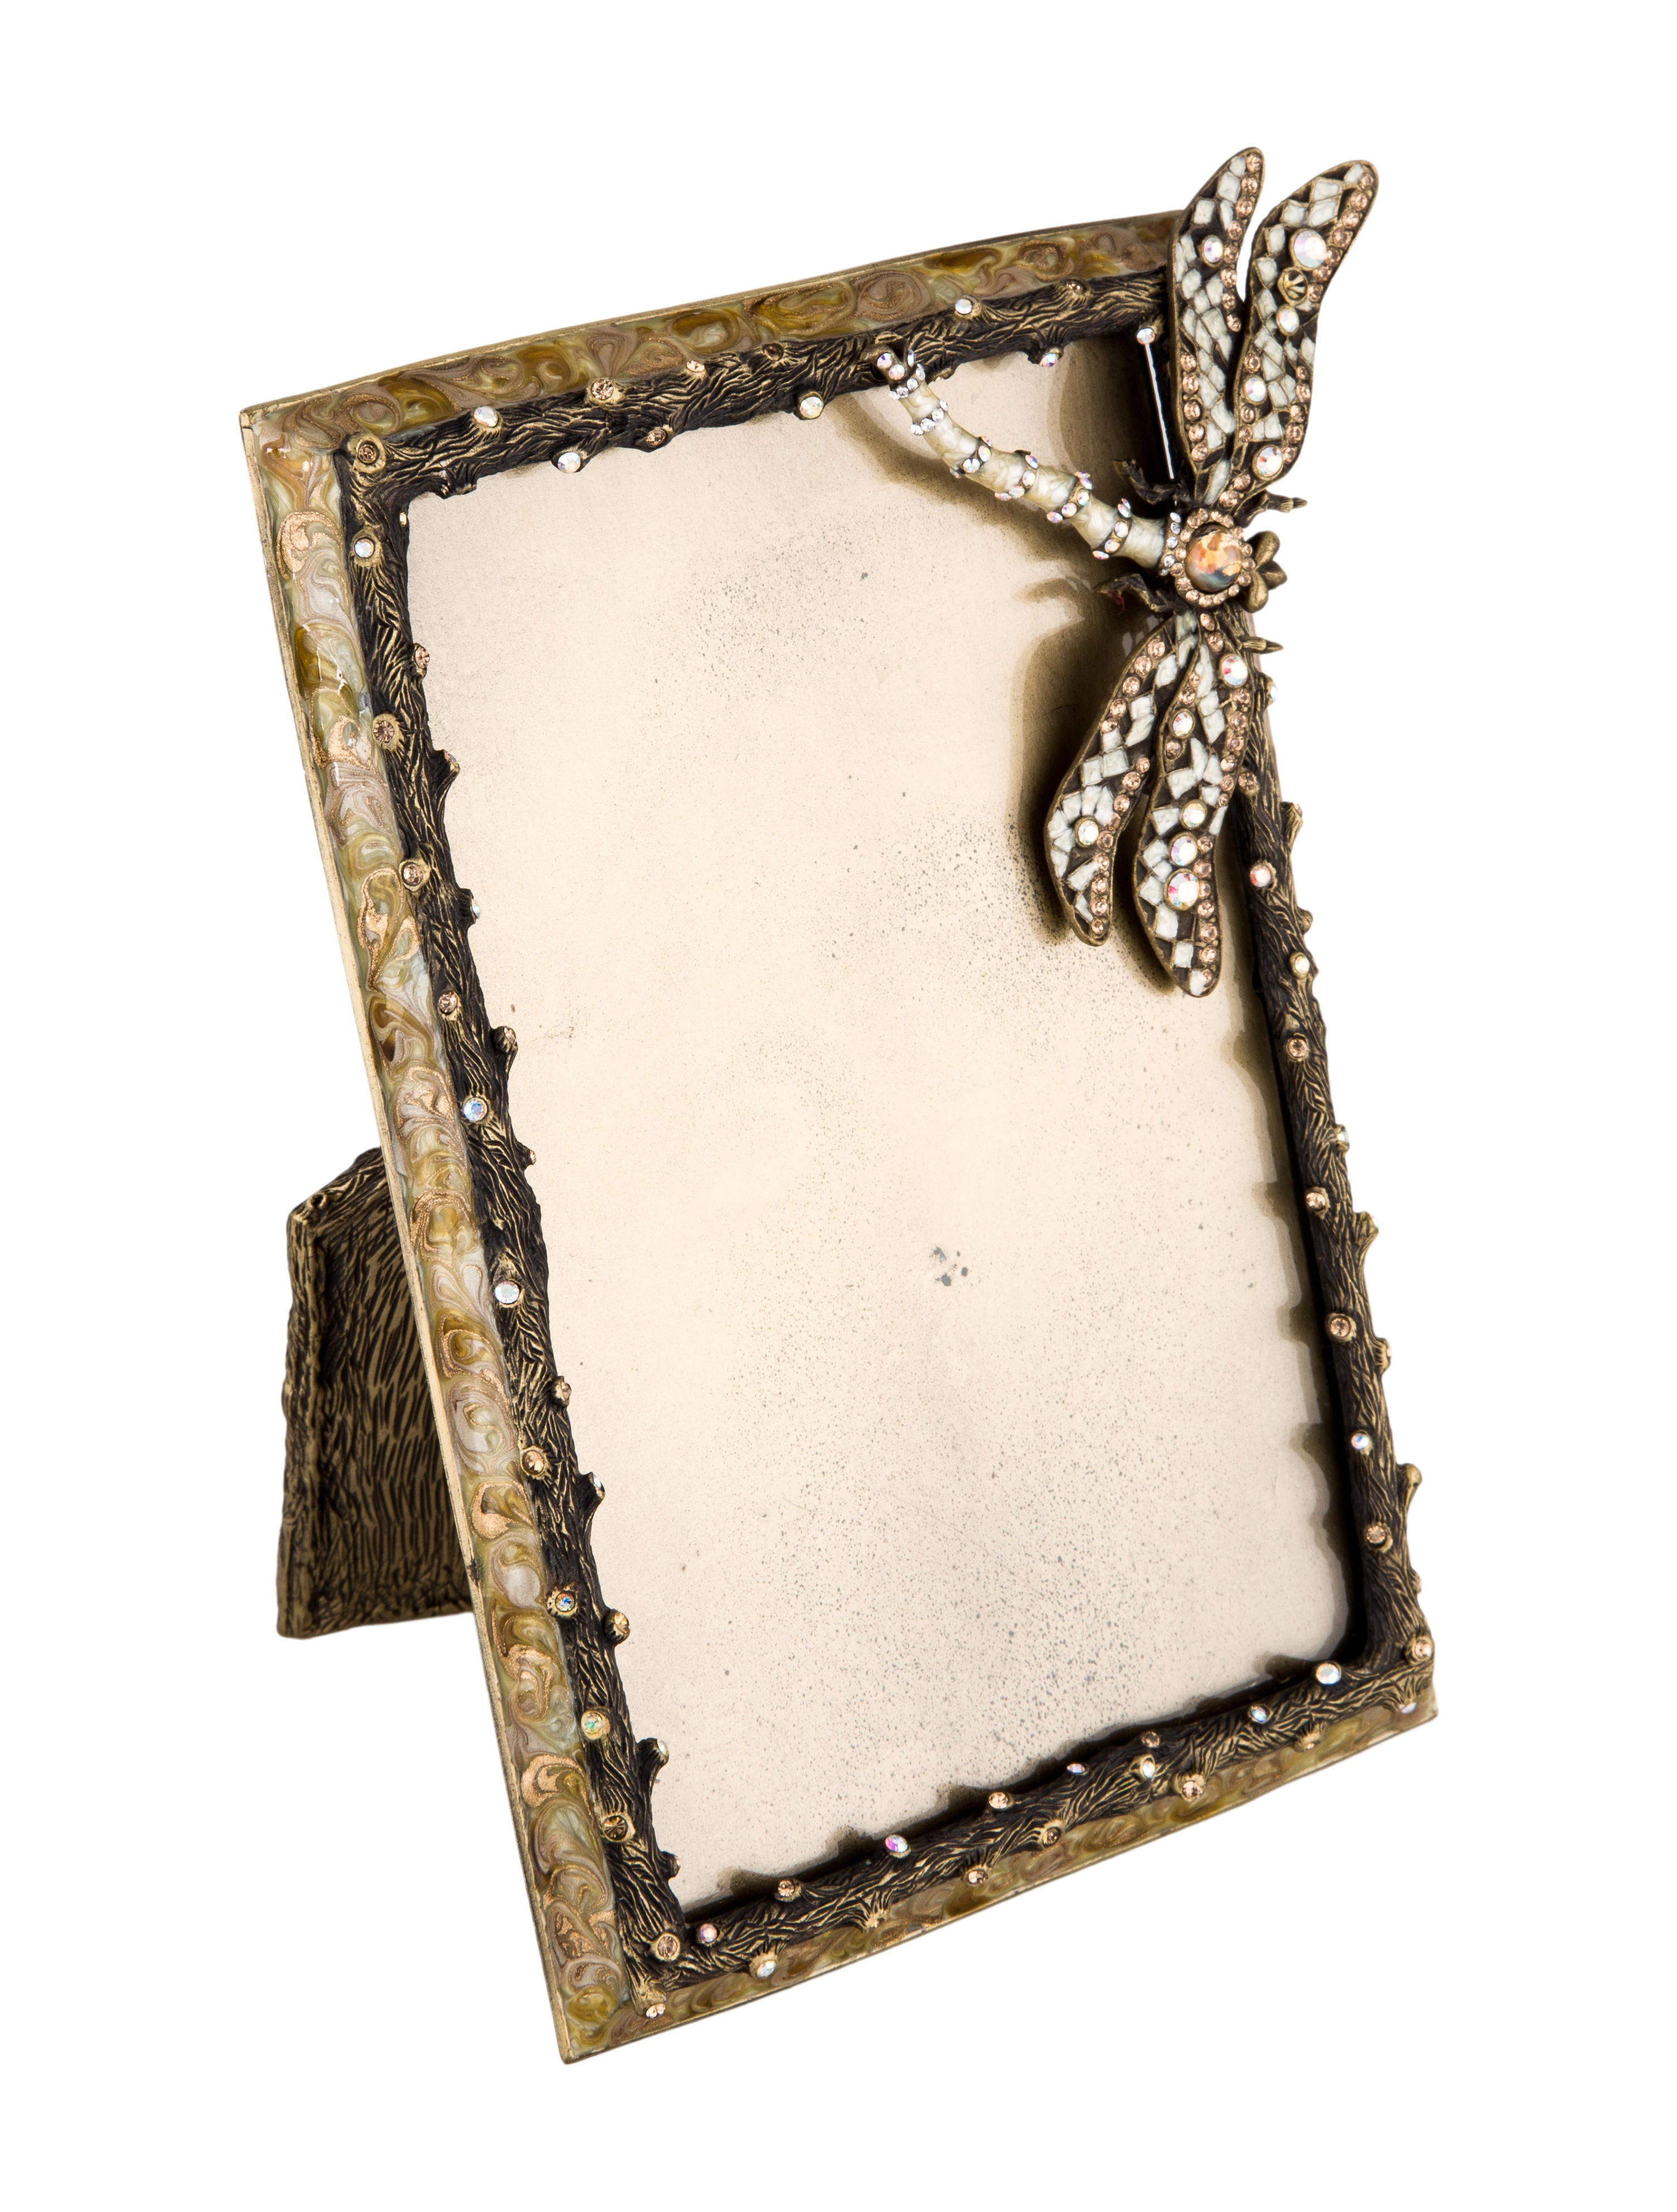 Jay strongwater embellished frame decor and accessories for Embellished mirror frame